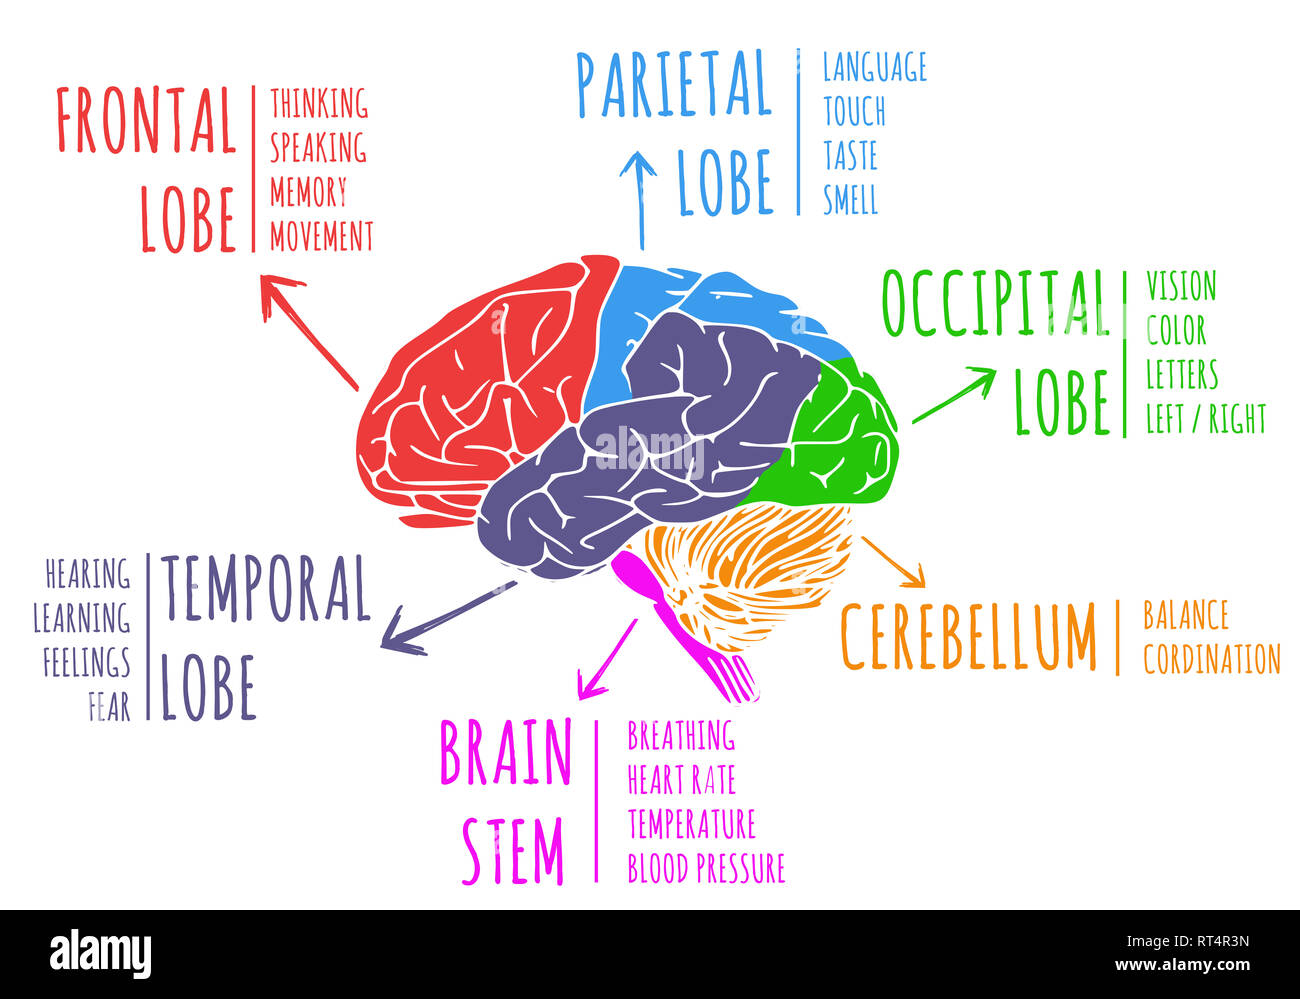 Illustration of human's brain region and function - Stock Image